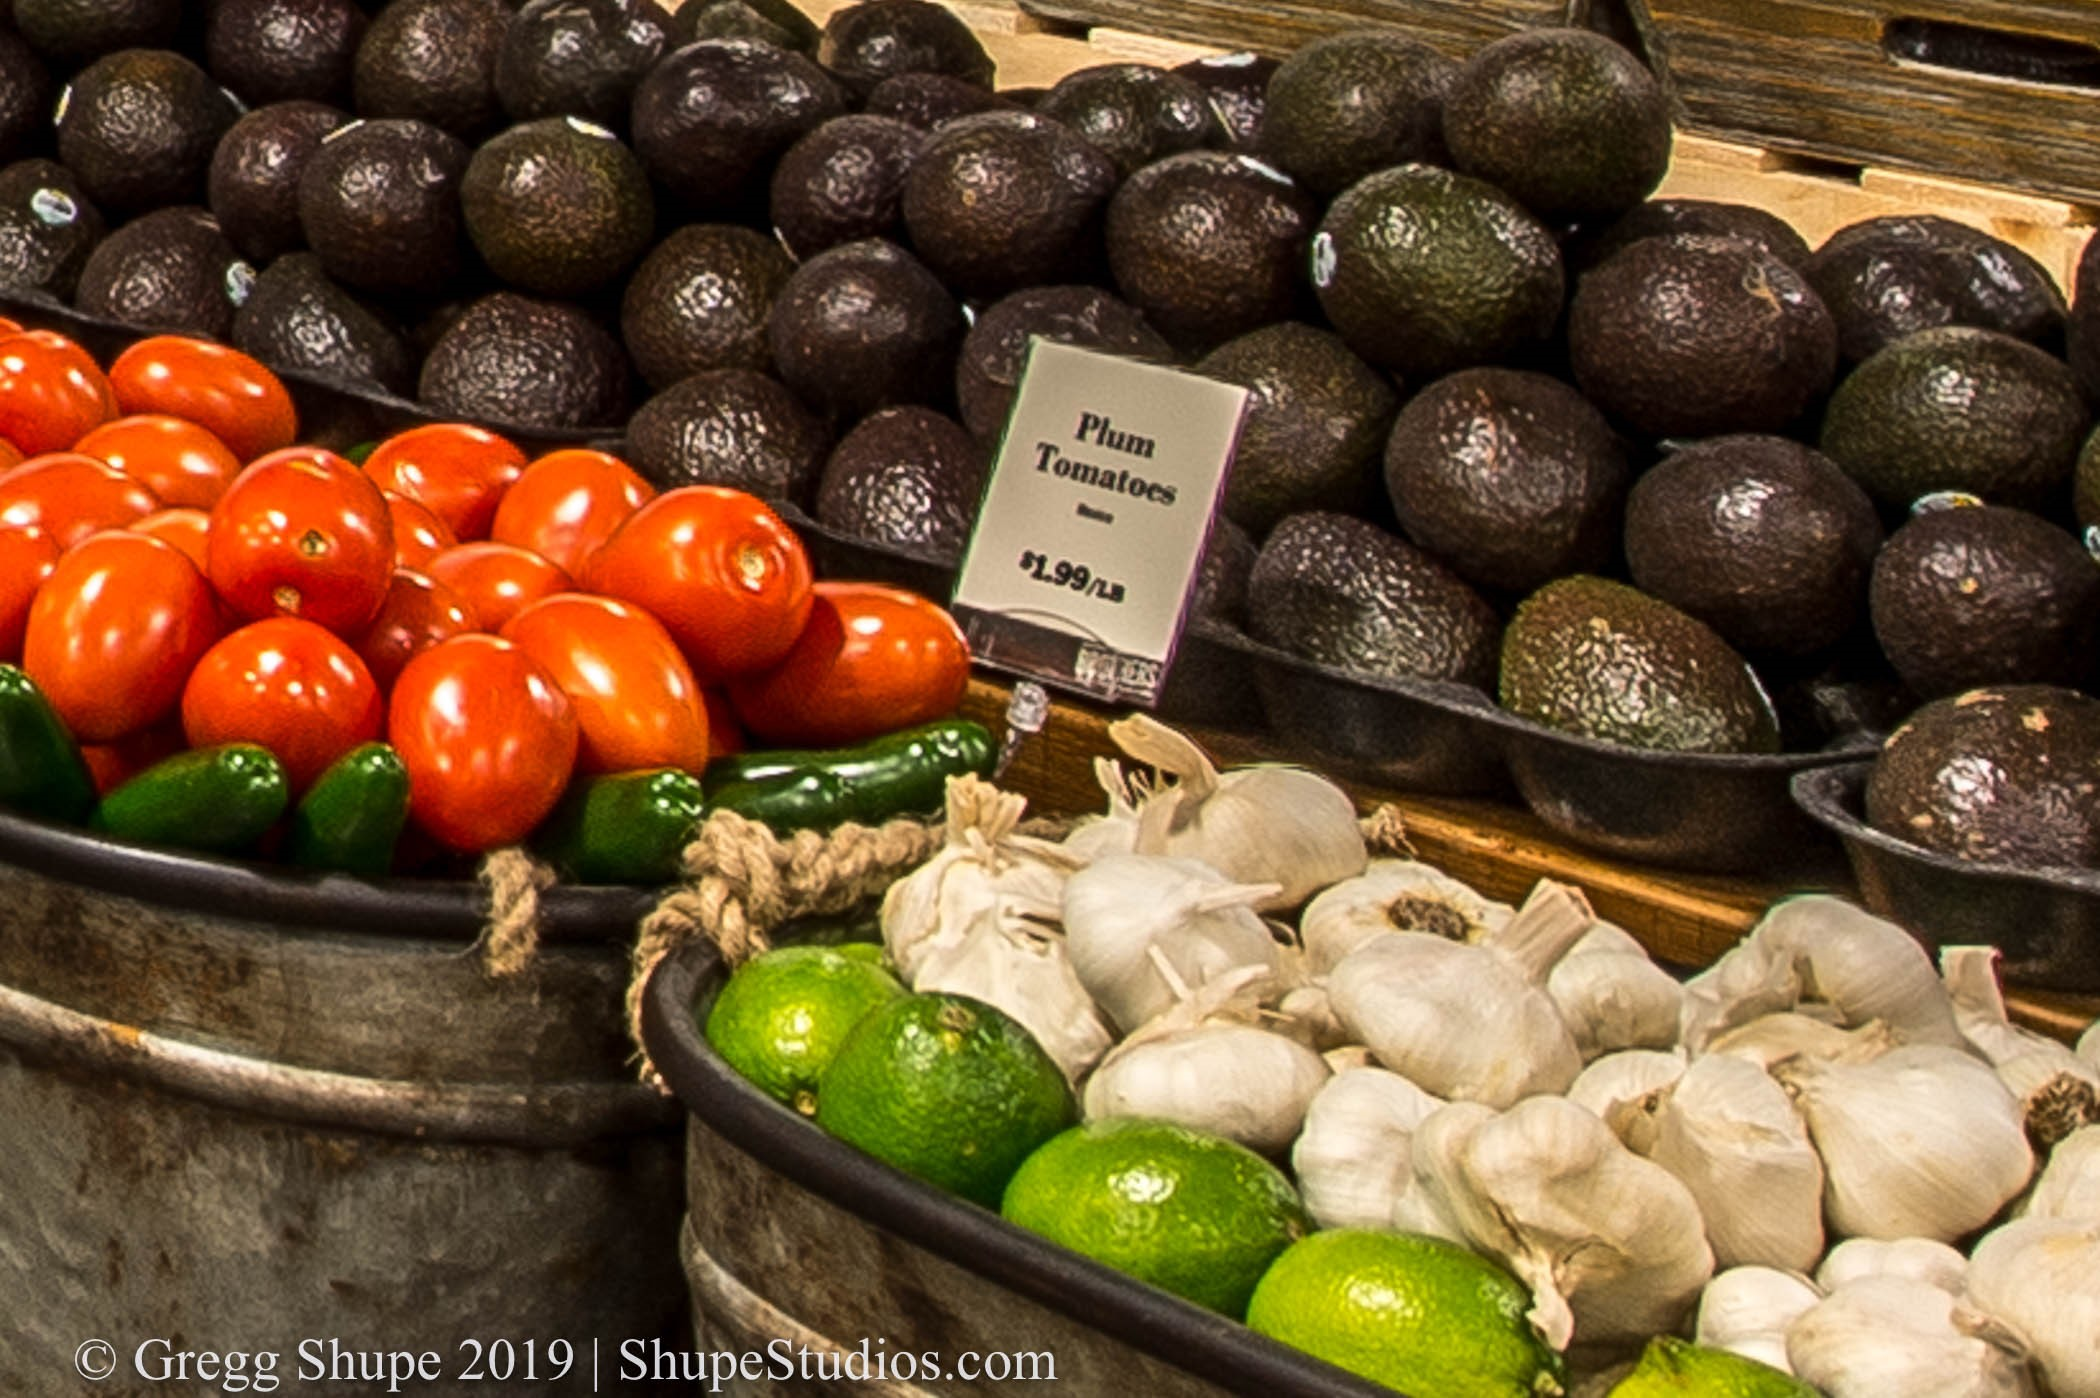 Here's 10% of the same image in TIFF resolution. See how clear the text is in the sign for Plum Tomatoes?